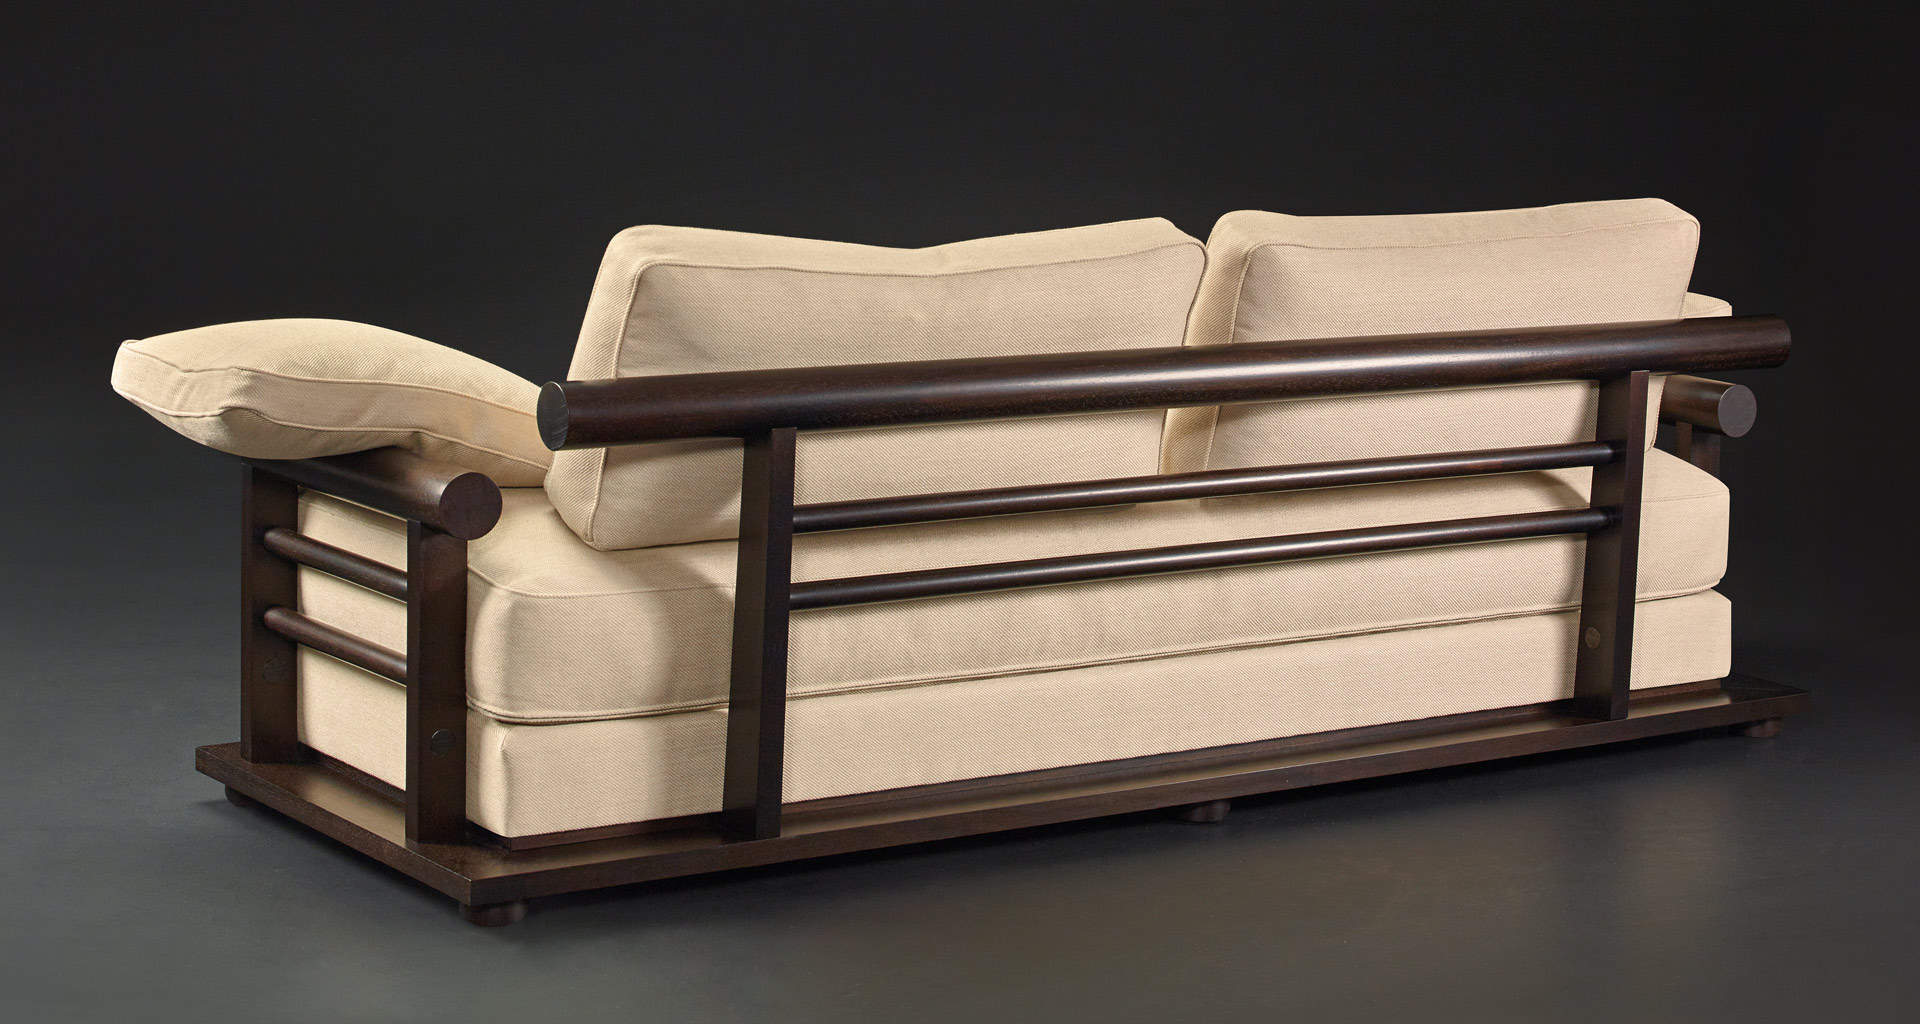 Wooden structure detail Nocturne, a sofa covered in fabric or leather, from Promemoria's Night Tales collection | Promemoria